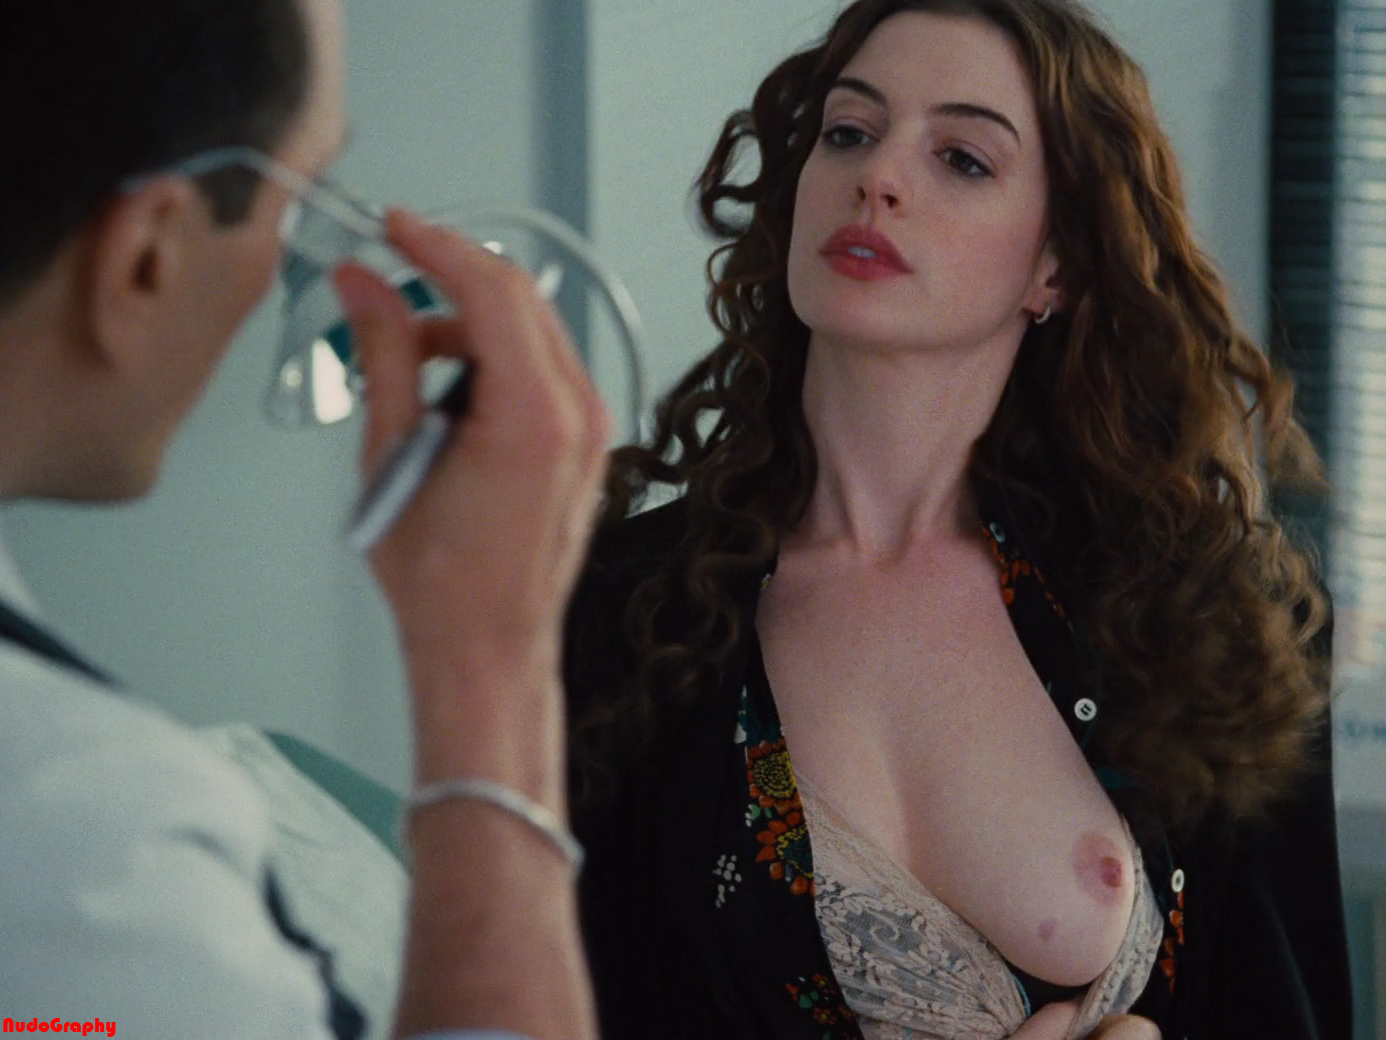 Anne Hathaway Love and other drugs 1080p  01 Pictures of QUALITY DIAPER (ADULT & BABY) @ CHEAPER PRICE   LAGRO/FAIRVIEW ...